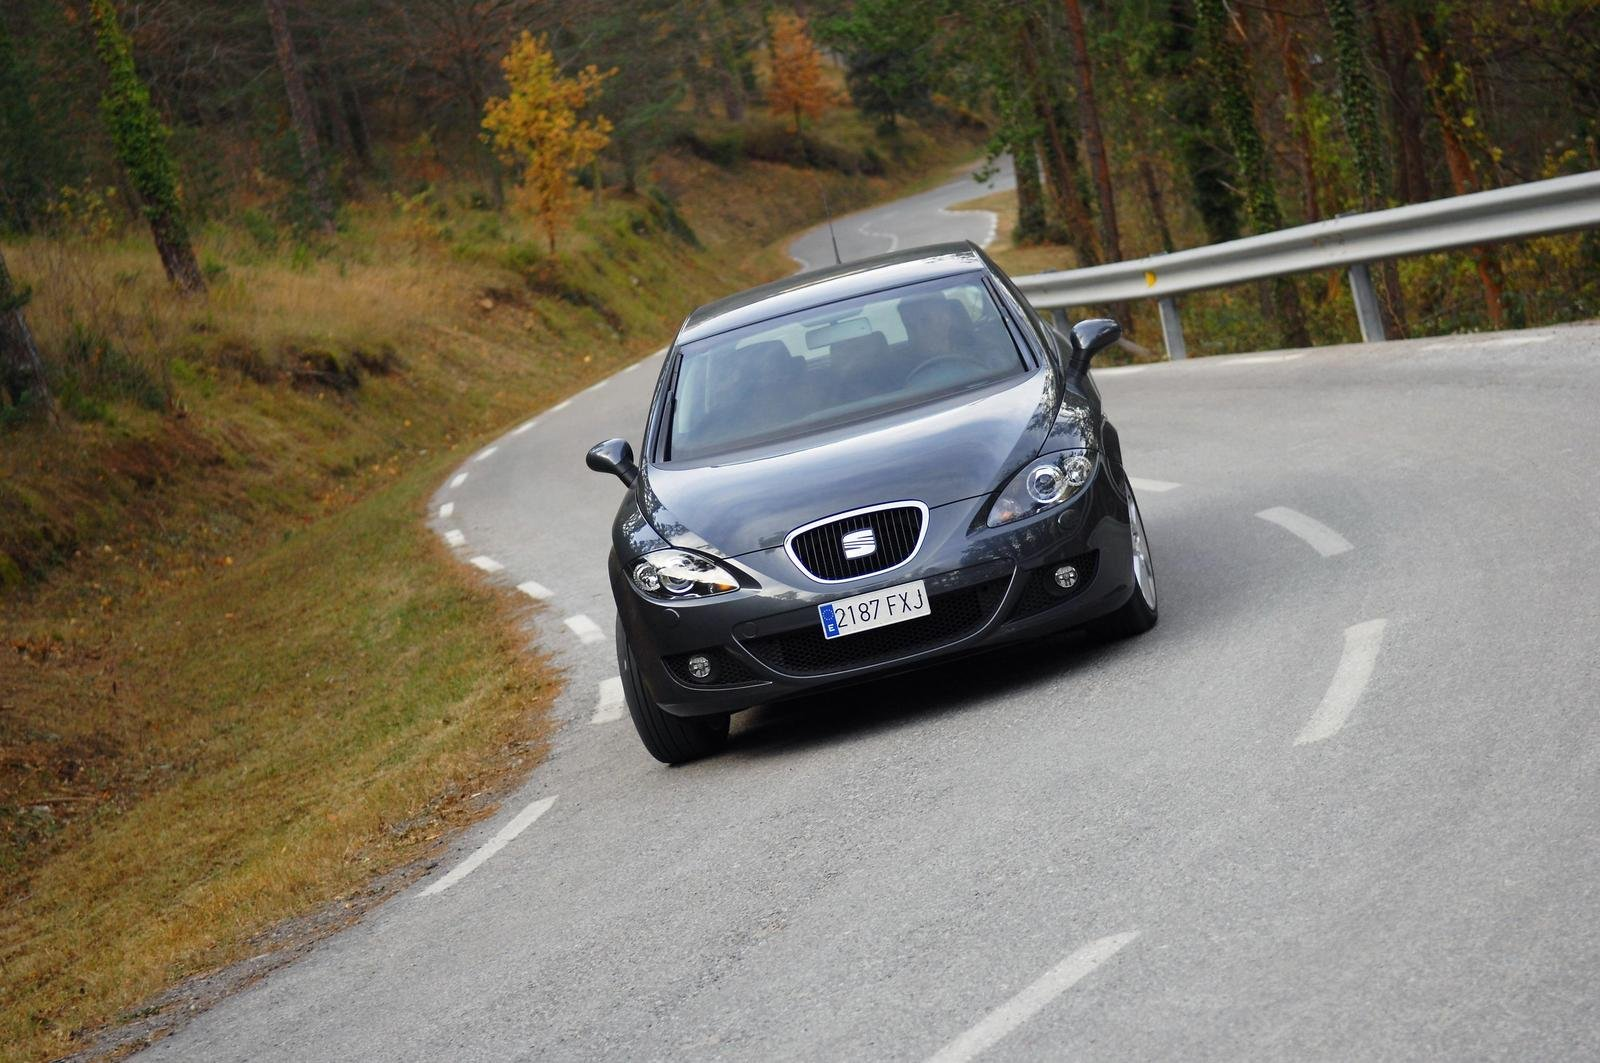 2008 seat leon 1 4 tsi picture 217771 car review top speed. Black Bedroom Furniture Sets. Home Design Ideas